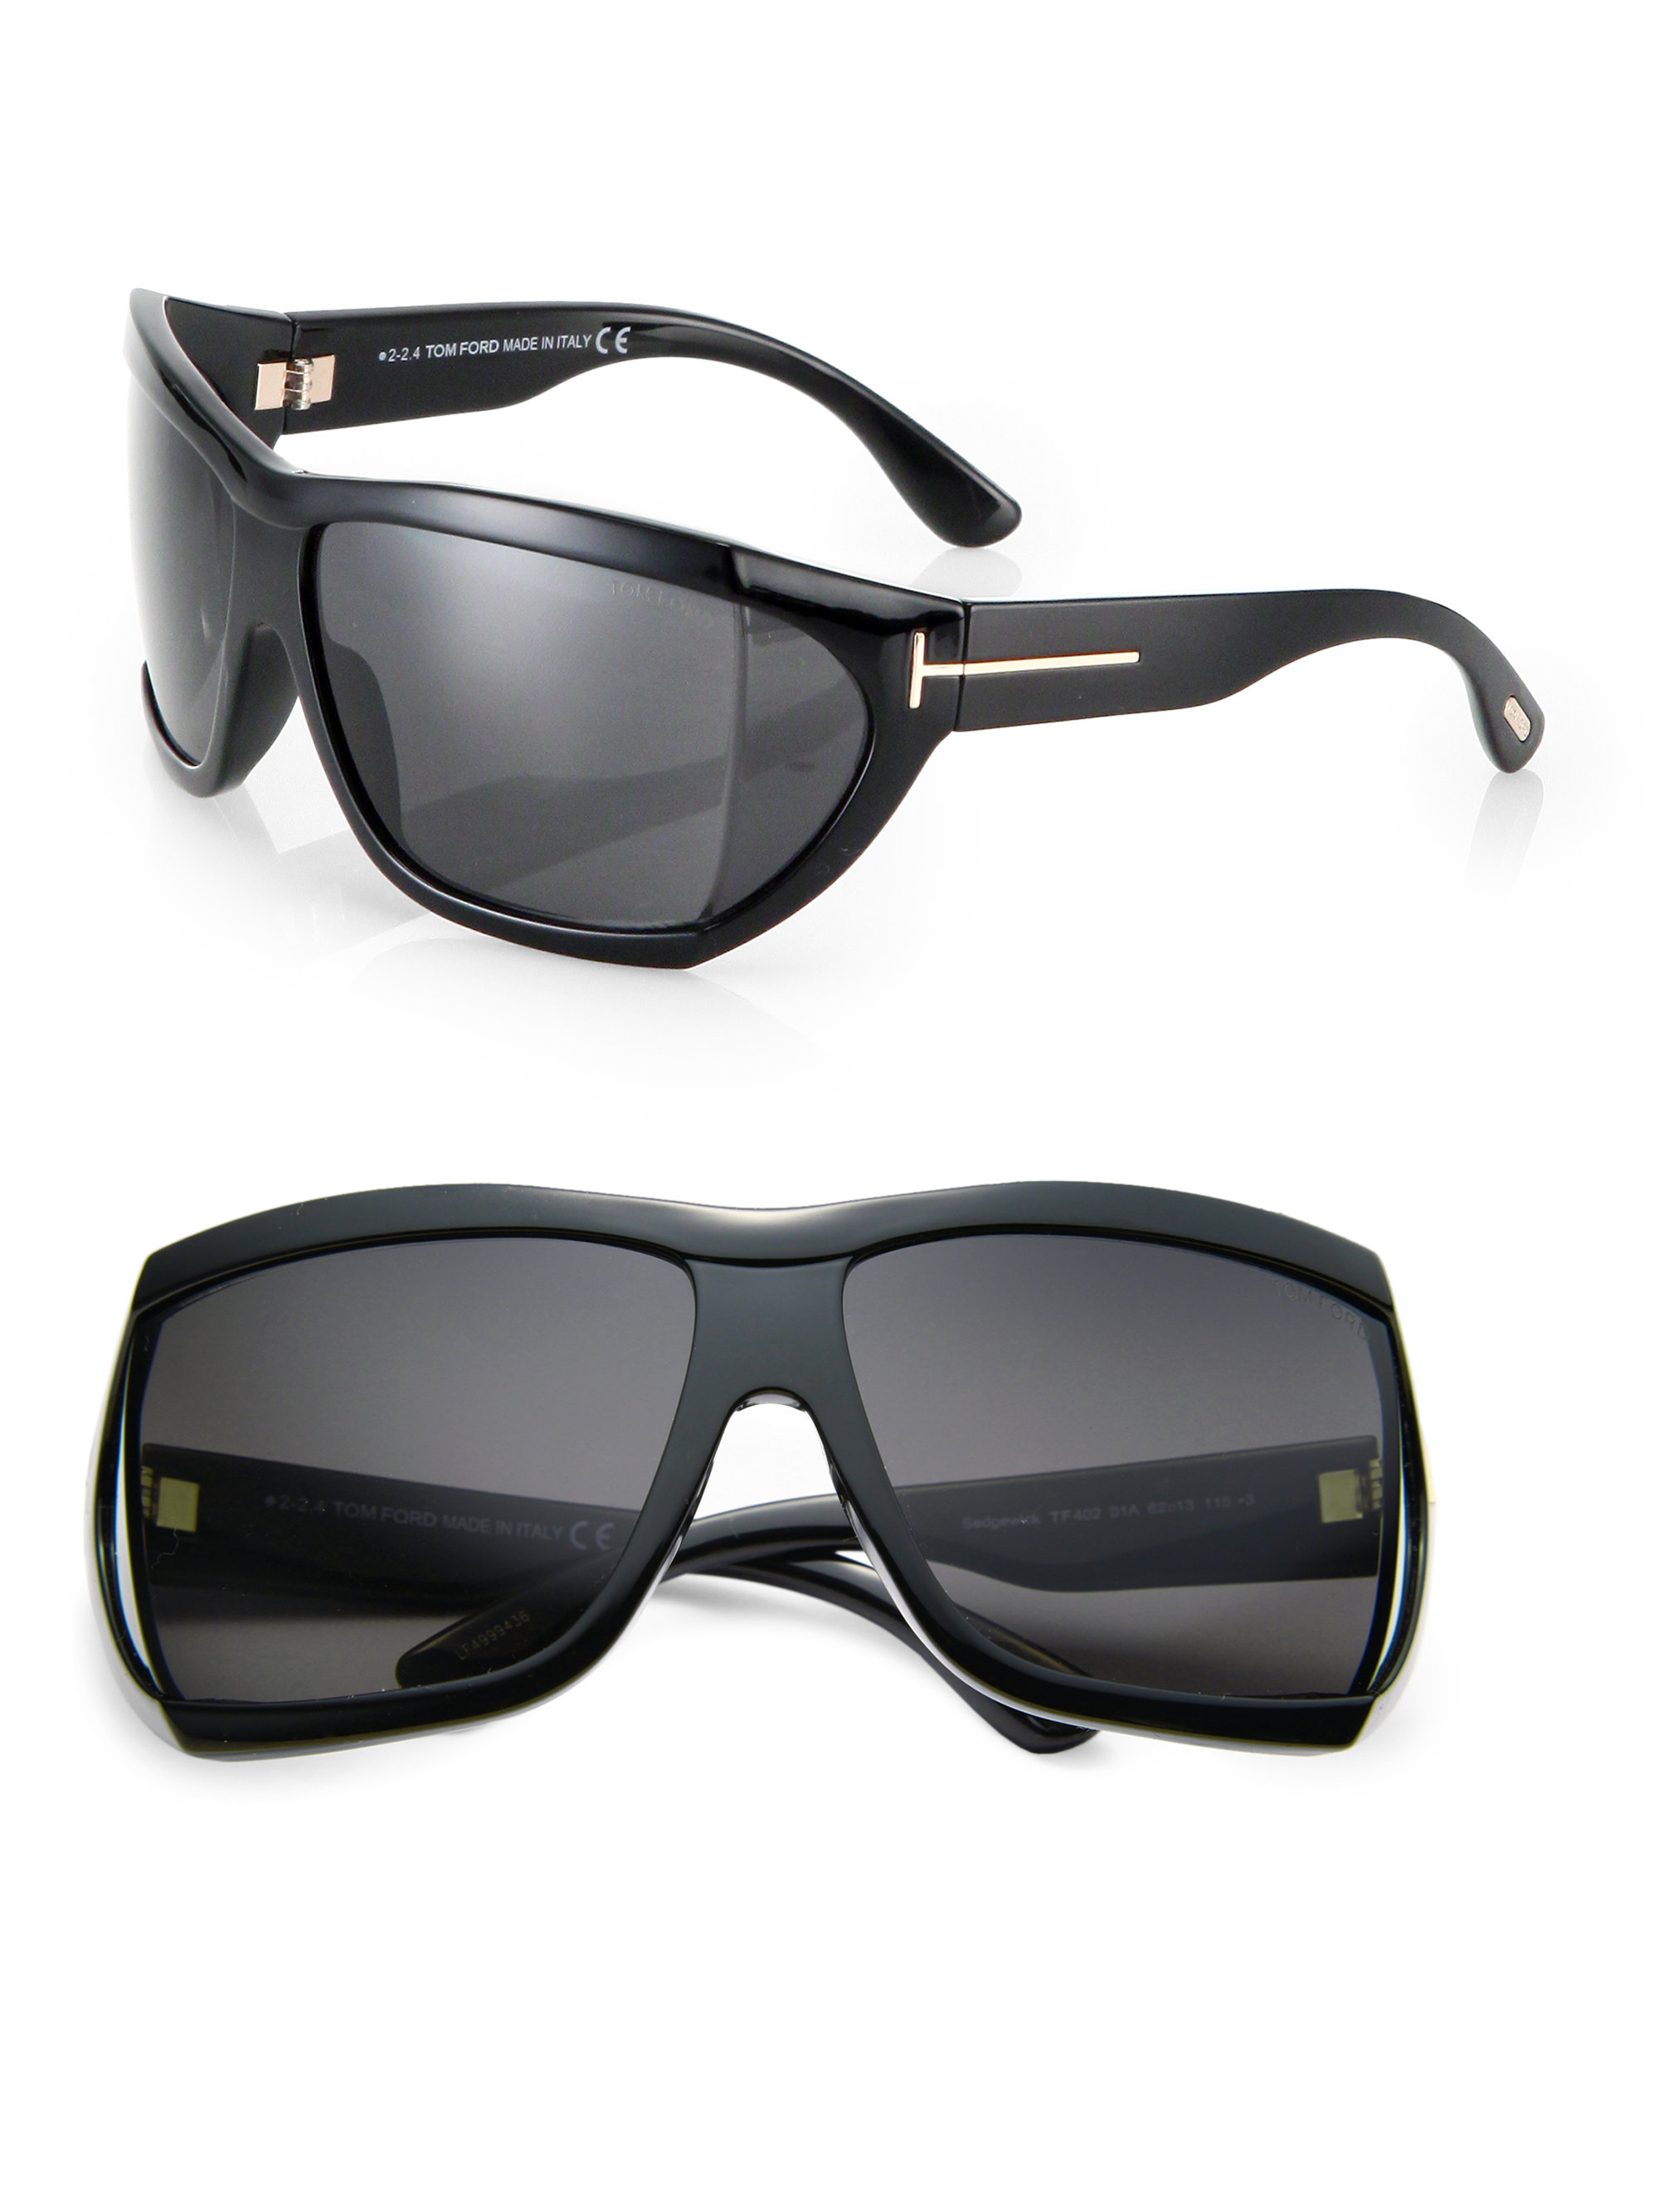 tom ford sedgwick 62mm squared mask sunglasses in black for men lyst. Cars Review. Best American Auto & Cars Review